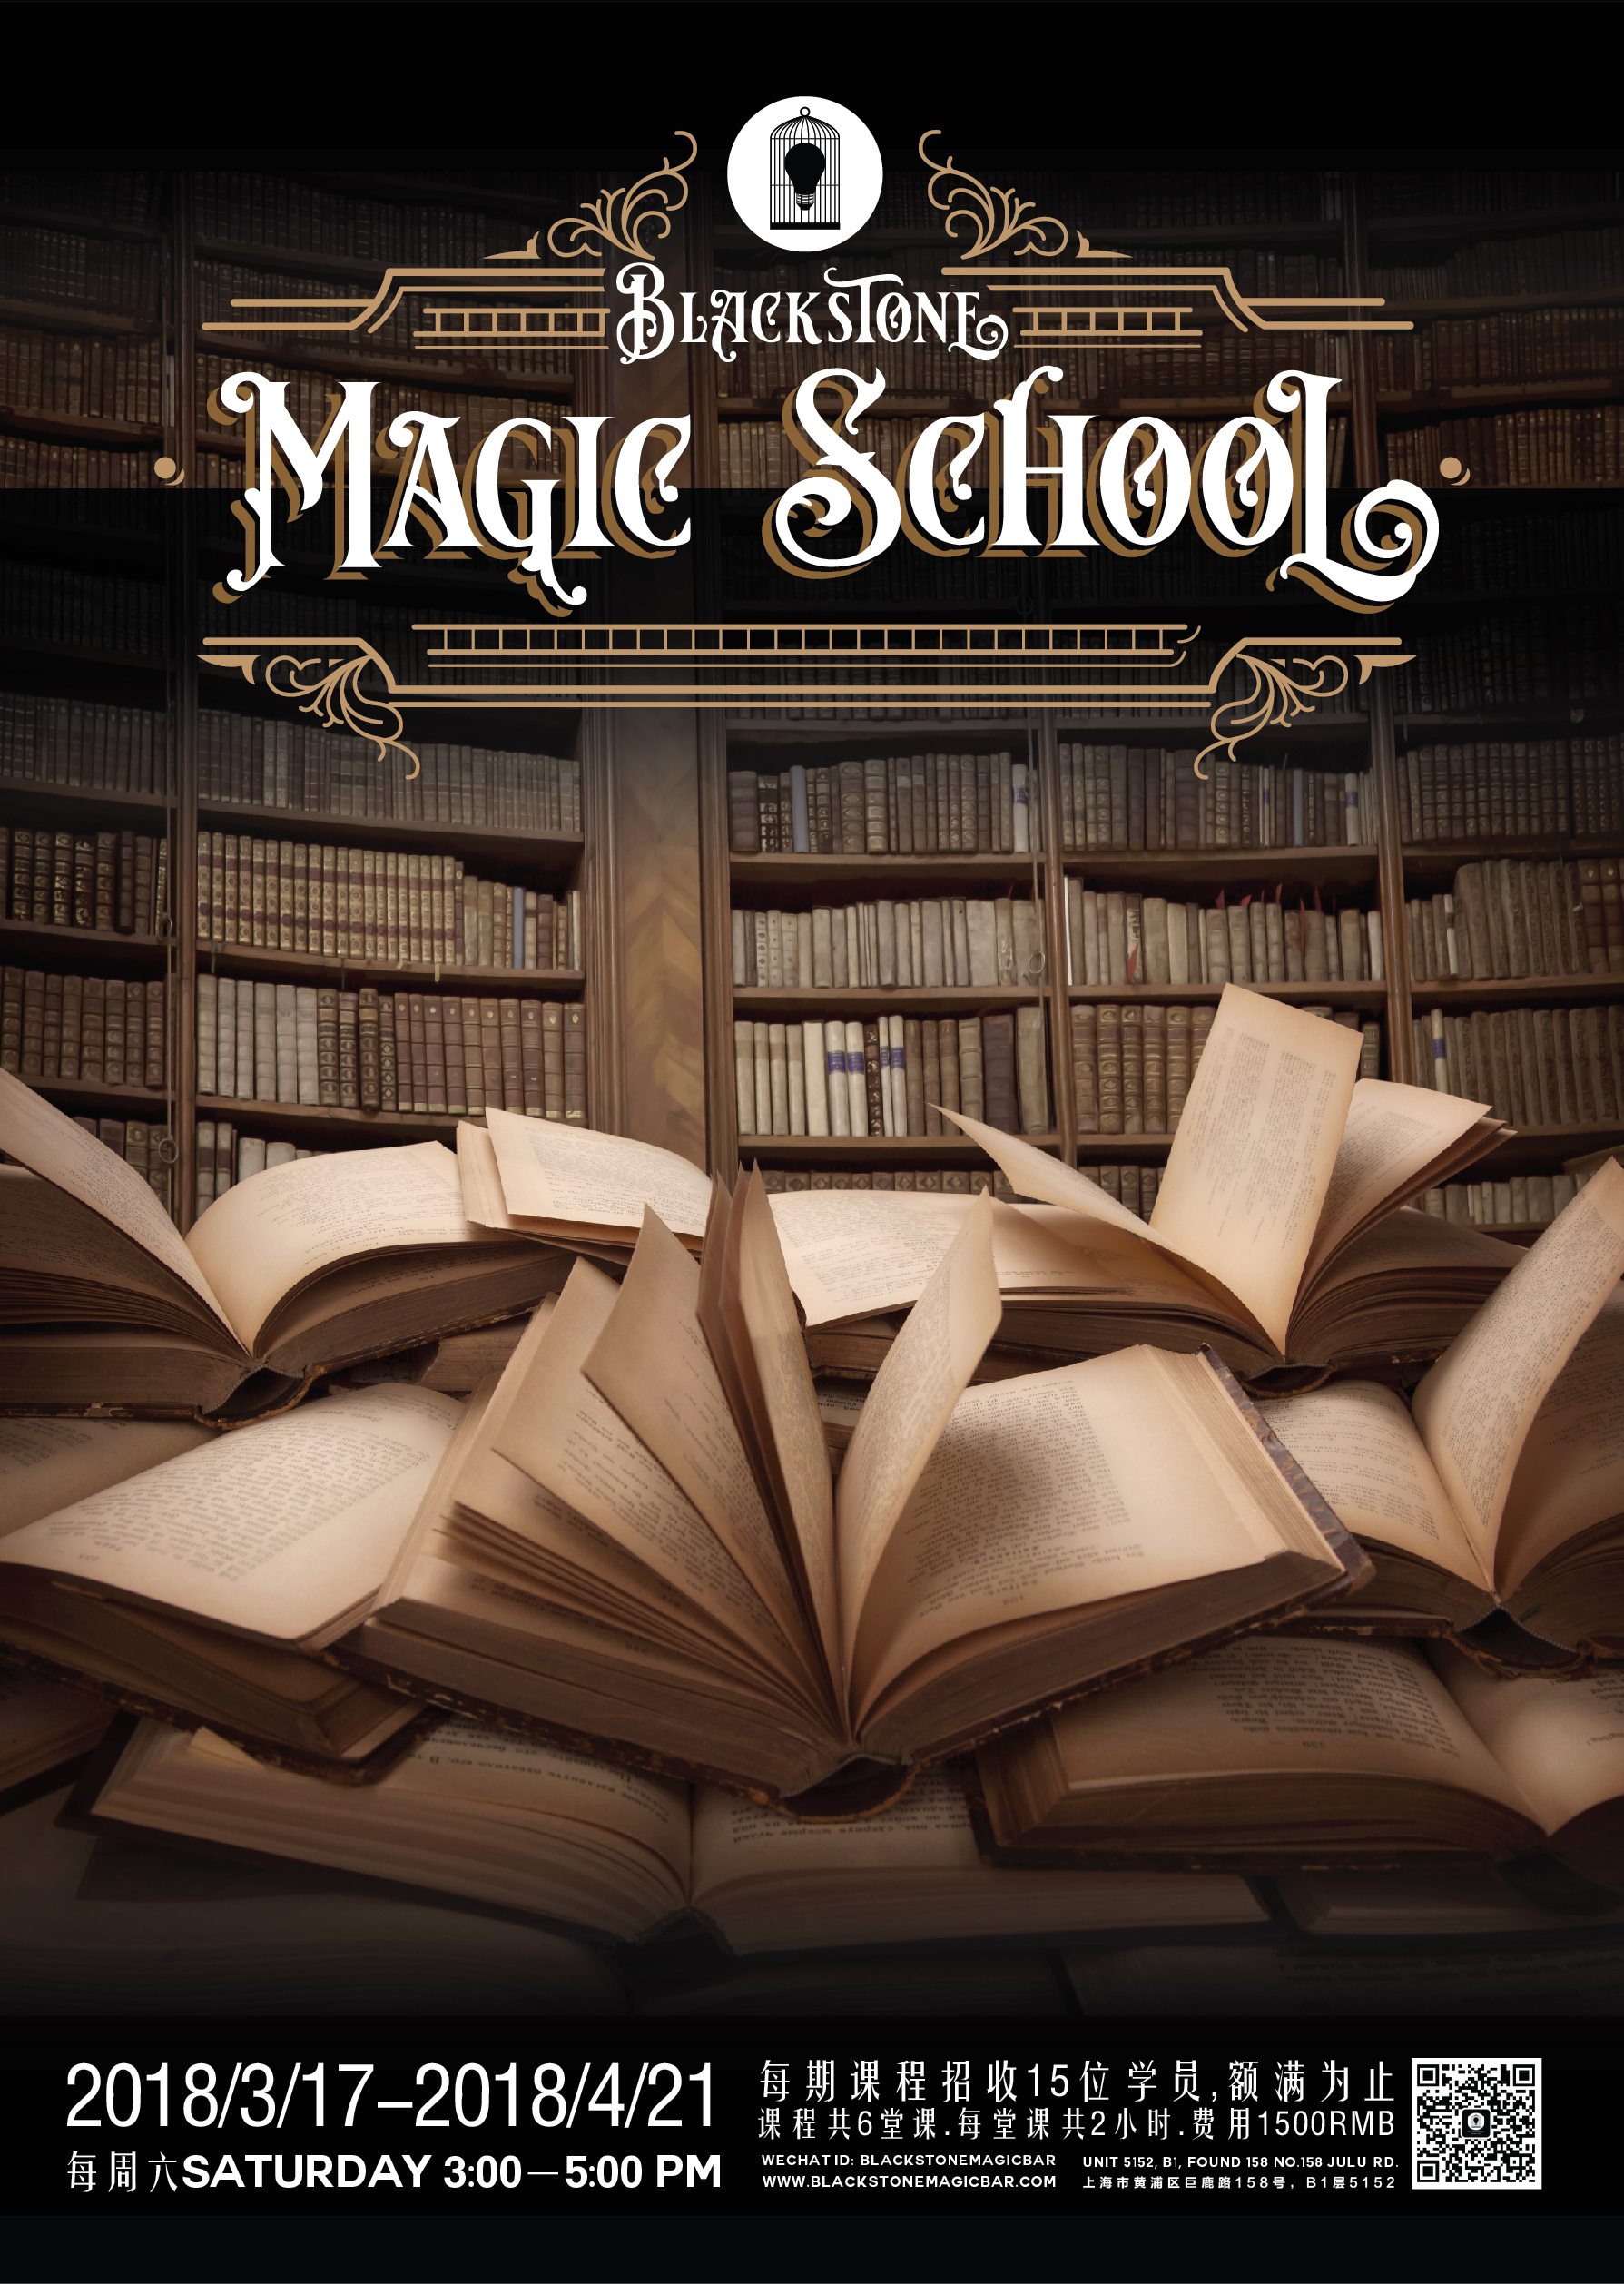 Blackstone Magic School